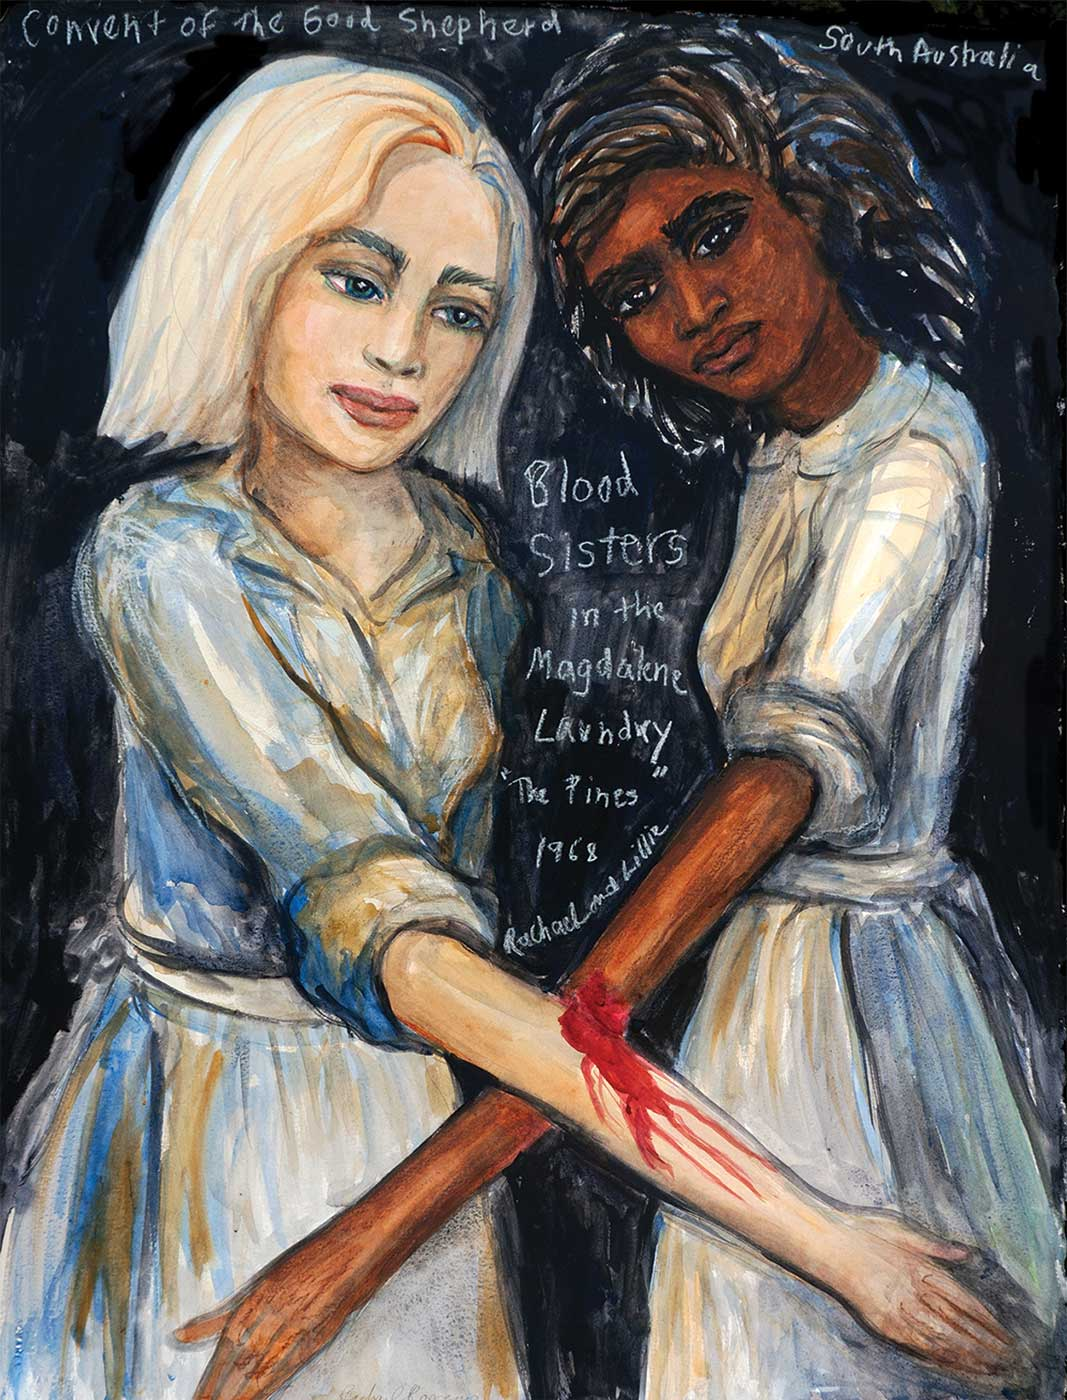 Photo of a watercolour painting depictings two girls, with extended arms, joined by blood. White handwriting at the top reads: 'Convent of the Good Shepherd, South Australia'. 'Blood Sisters / in the/ Magdalene / Laundry / The Pines / 1968 / Rachael and Lillie' is written between the girls. - click to view larger image